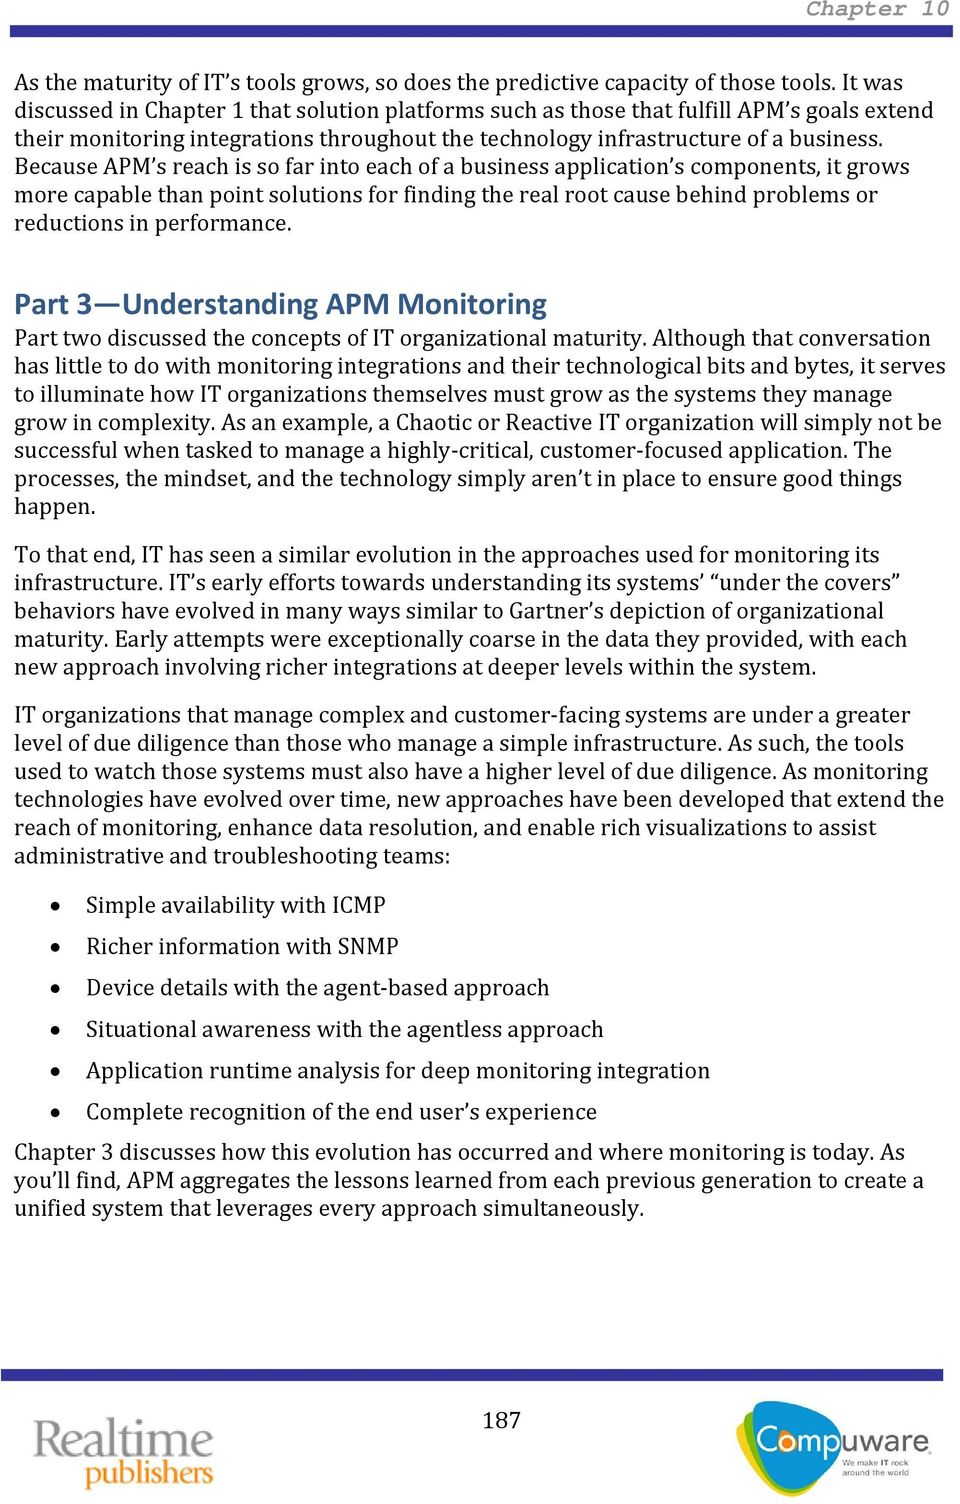 Because APM s reach is so far into each of a business application s components, it grows more capable than point solutions for finding the real root cause behind problems or reductions in performance.